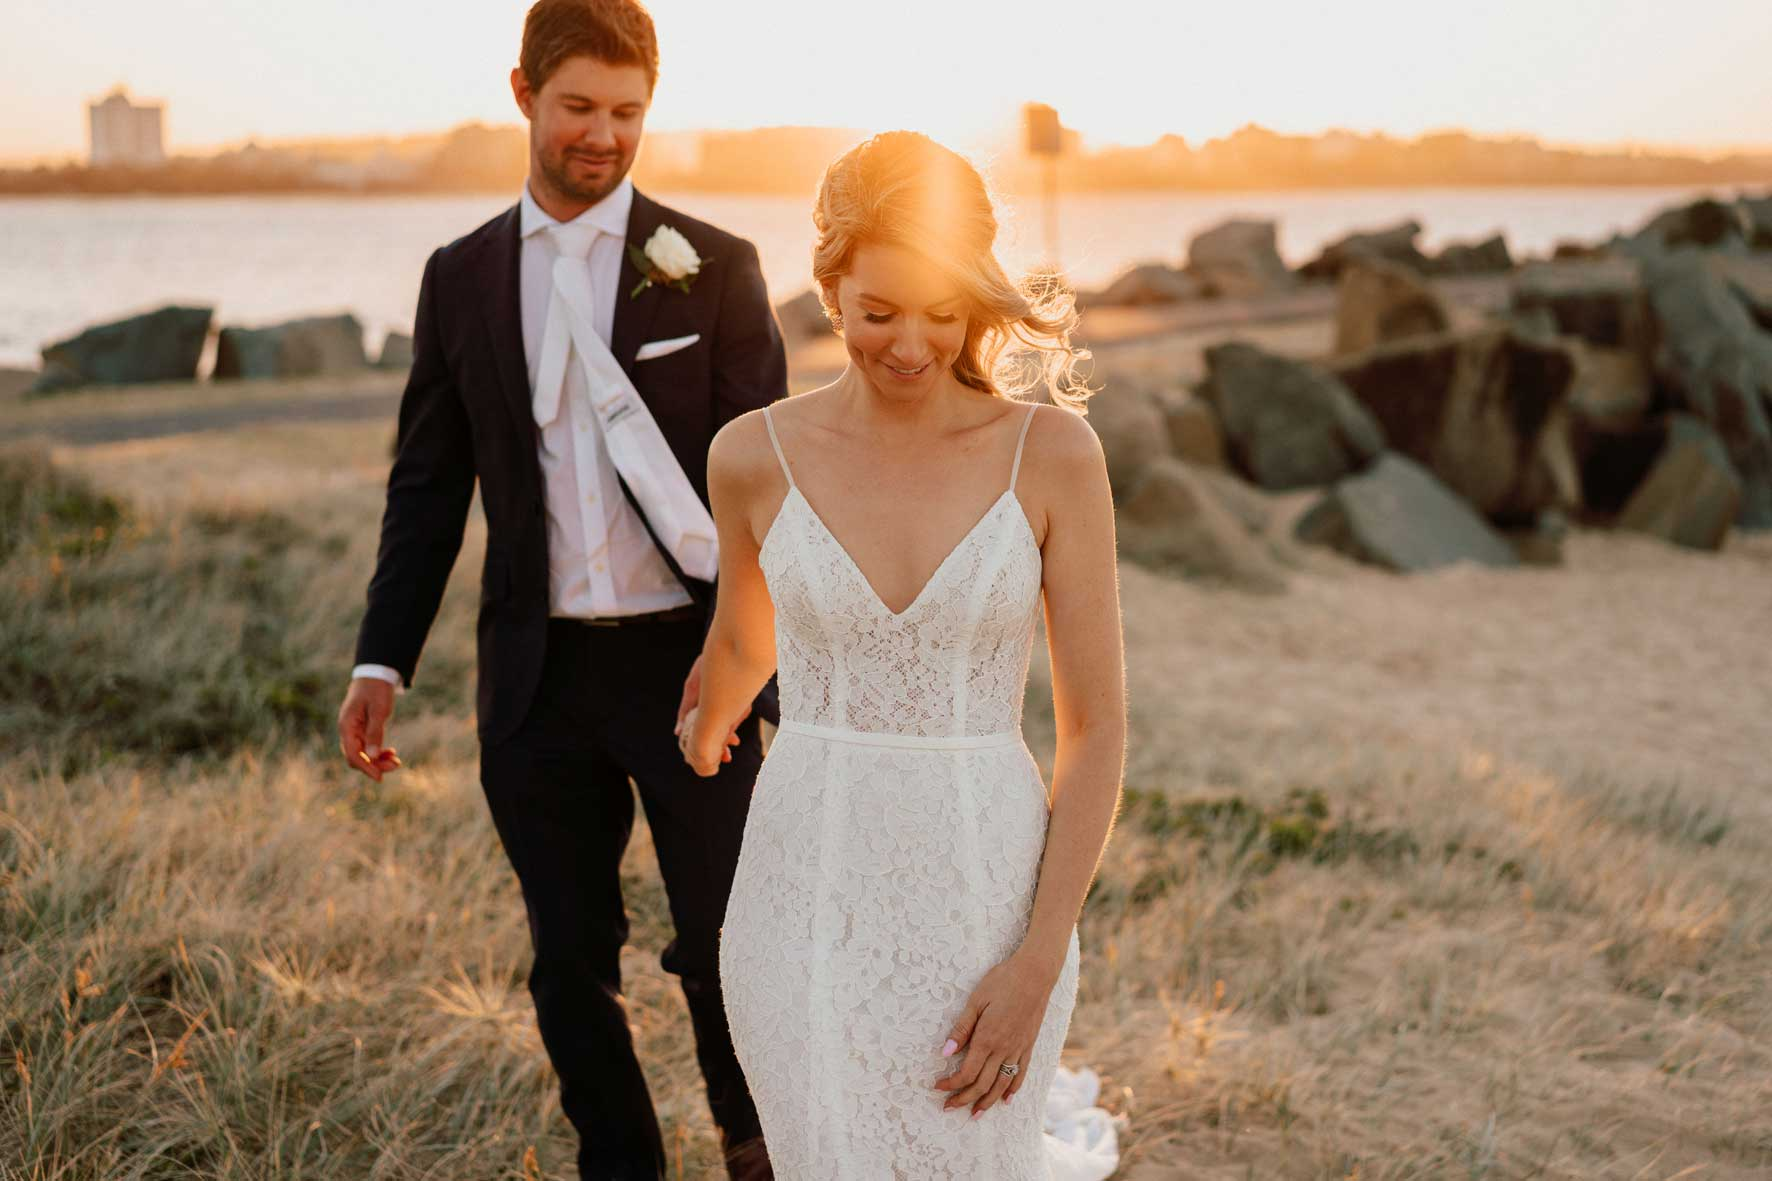 Here at Blush Weddings and Events, we are so lucky to be apart of so many beautiful weddings.